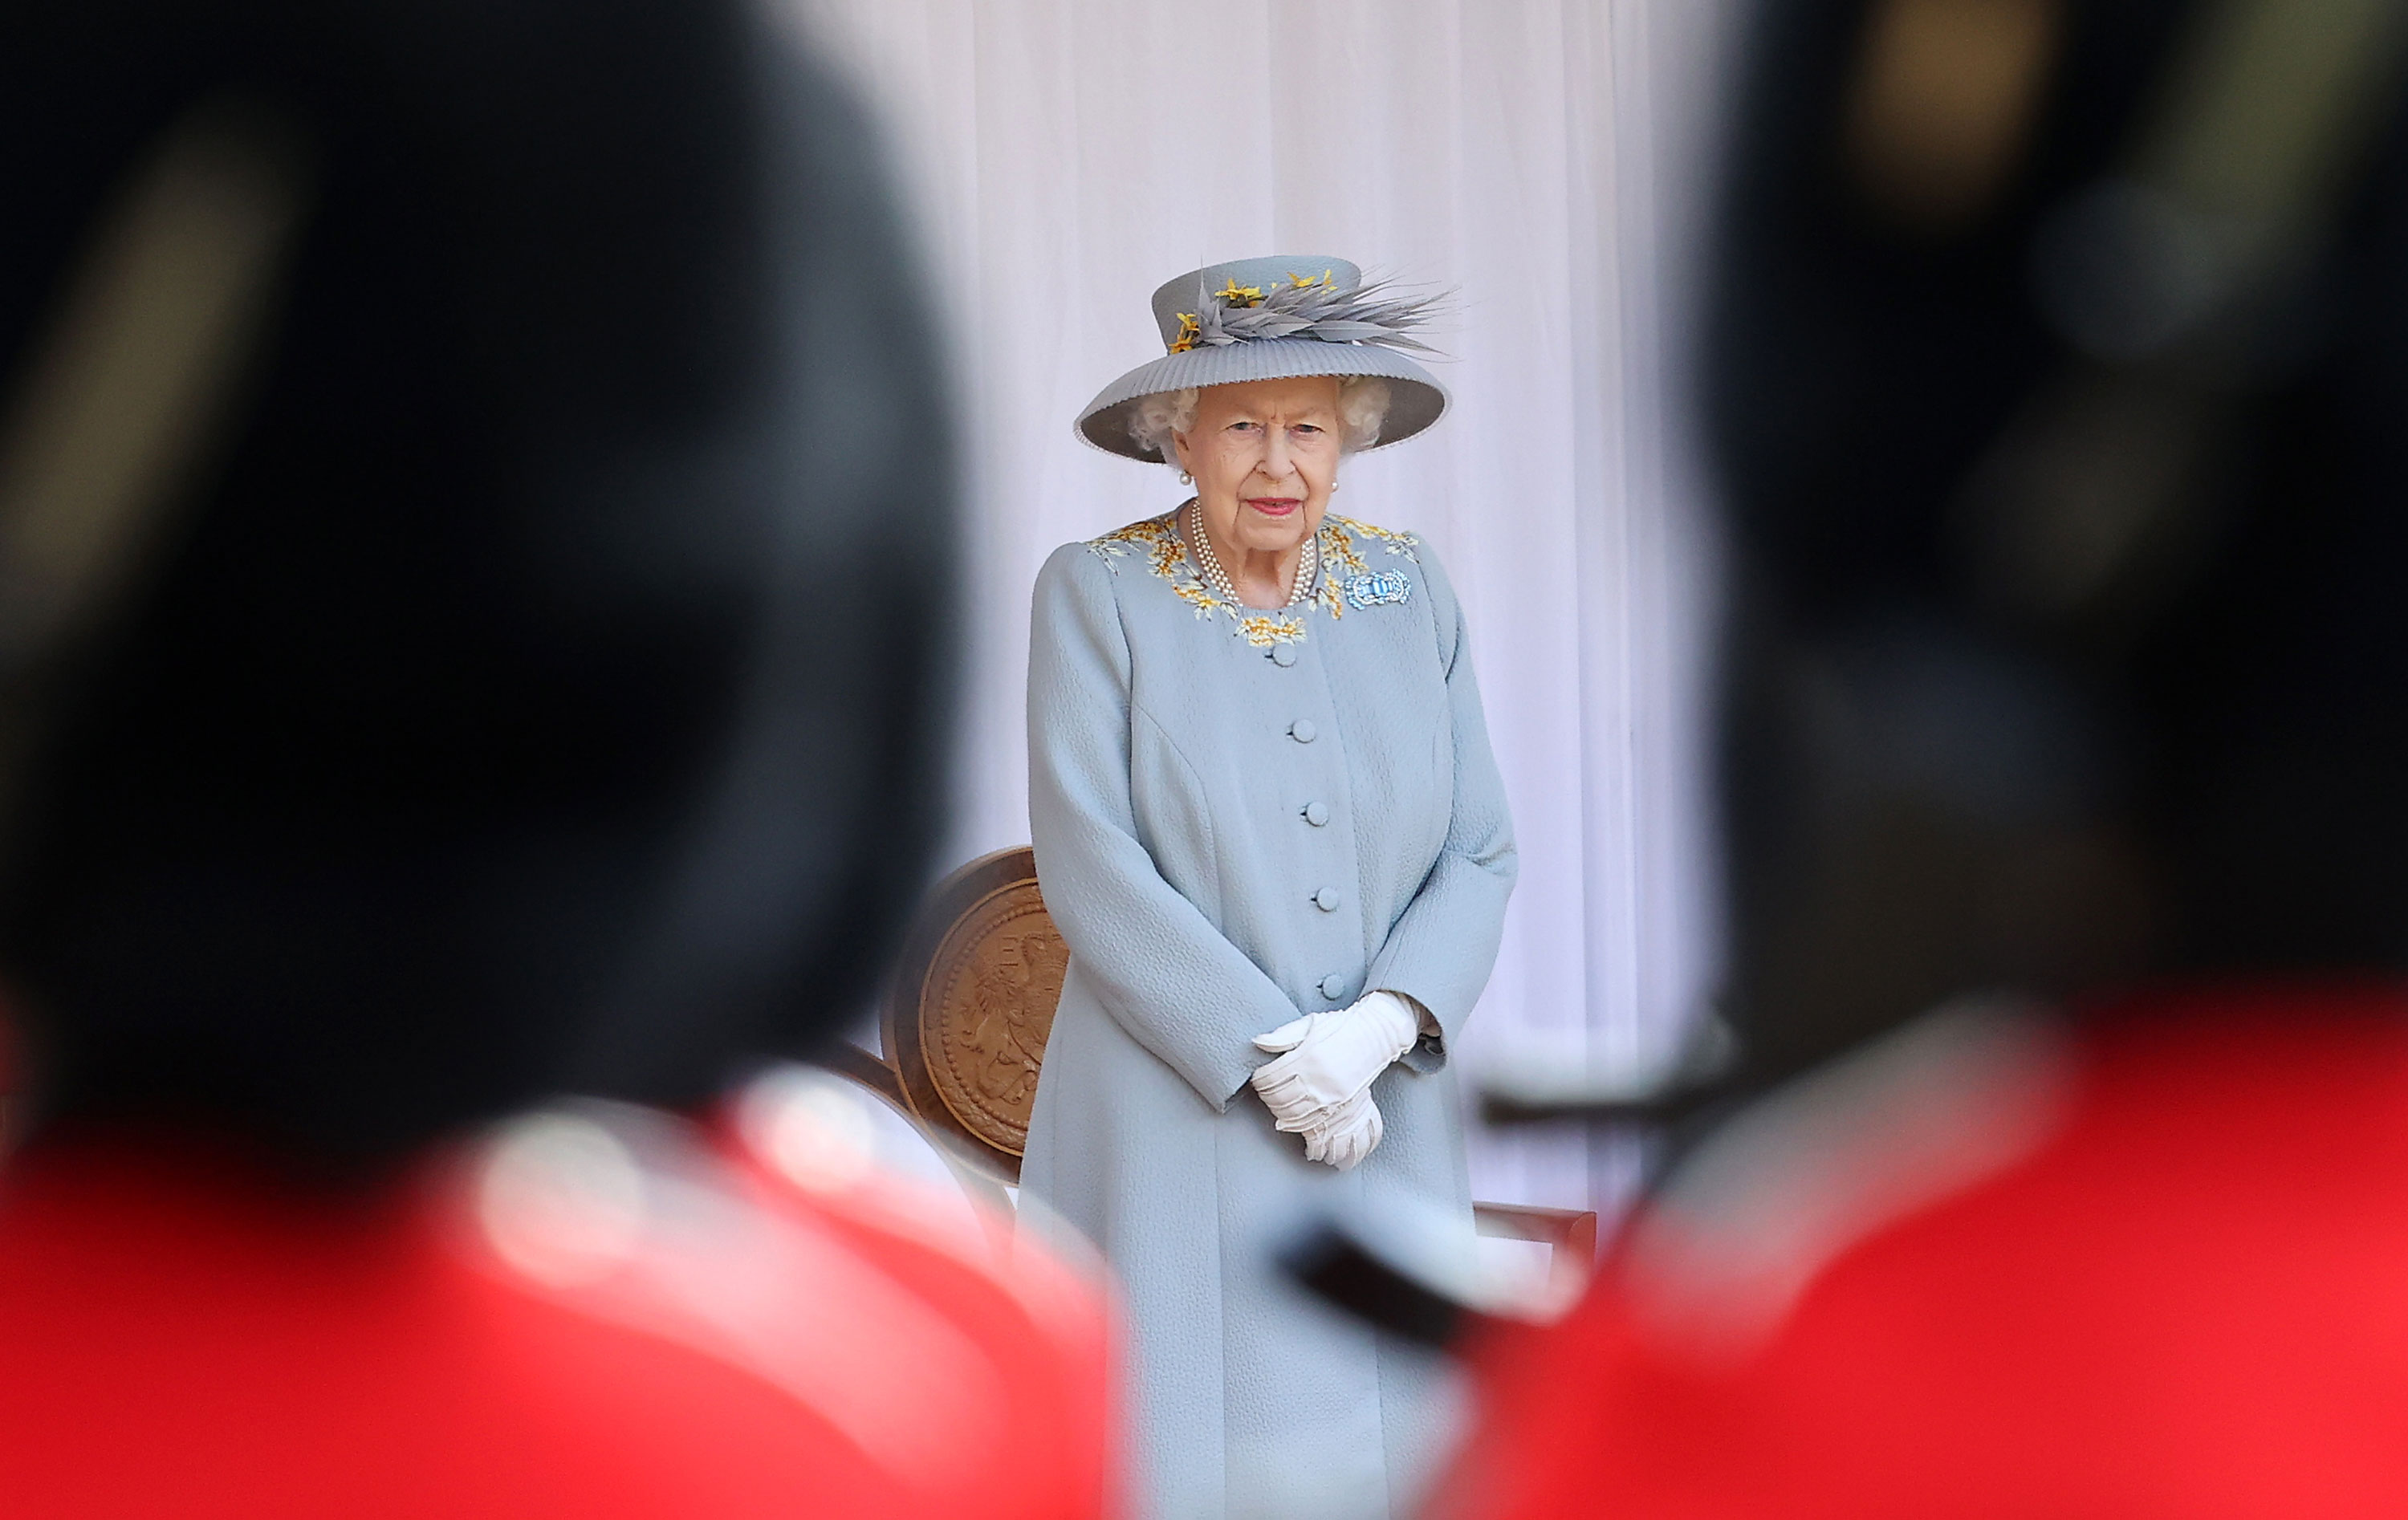 Queen Elizabeth II attends a military ceremony at Windsor Castle in England on June 12.